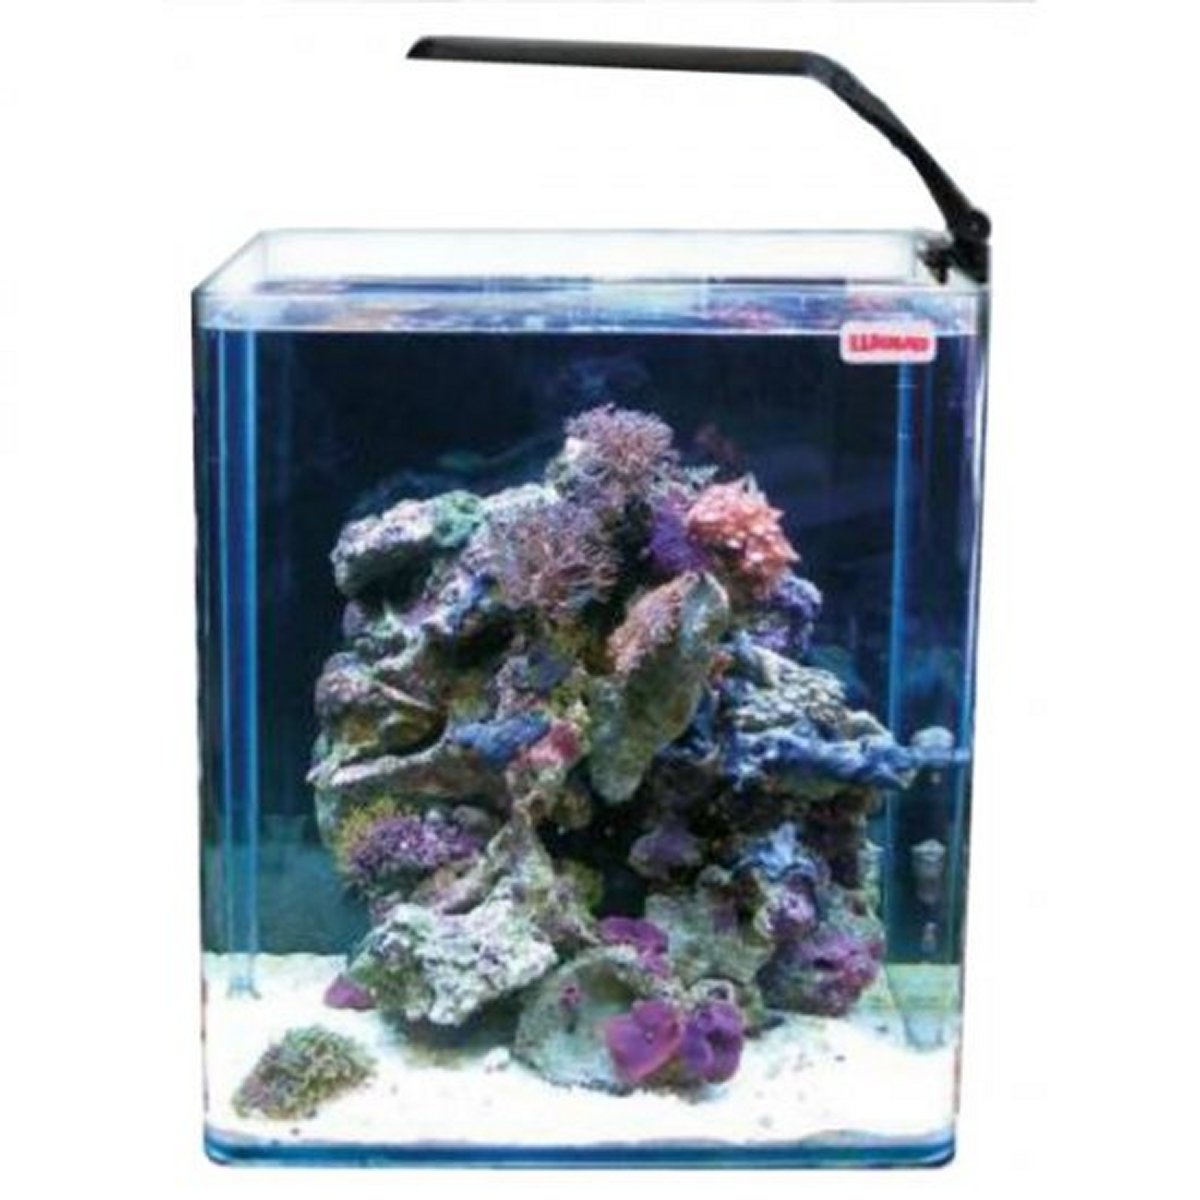 Wave box cubo 25 orion led nano acquario ulisse quality shop for Acquario shop online